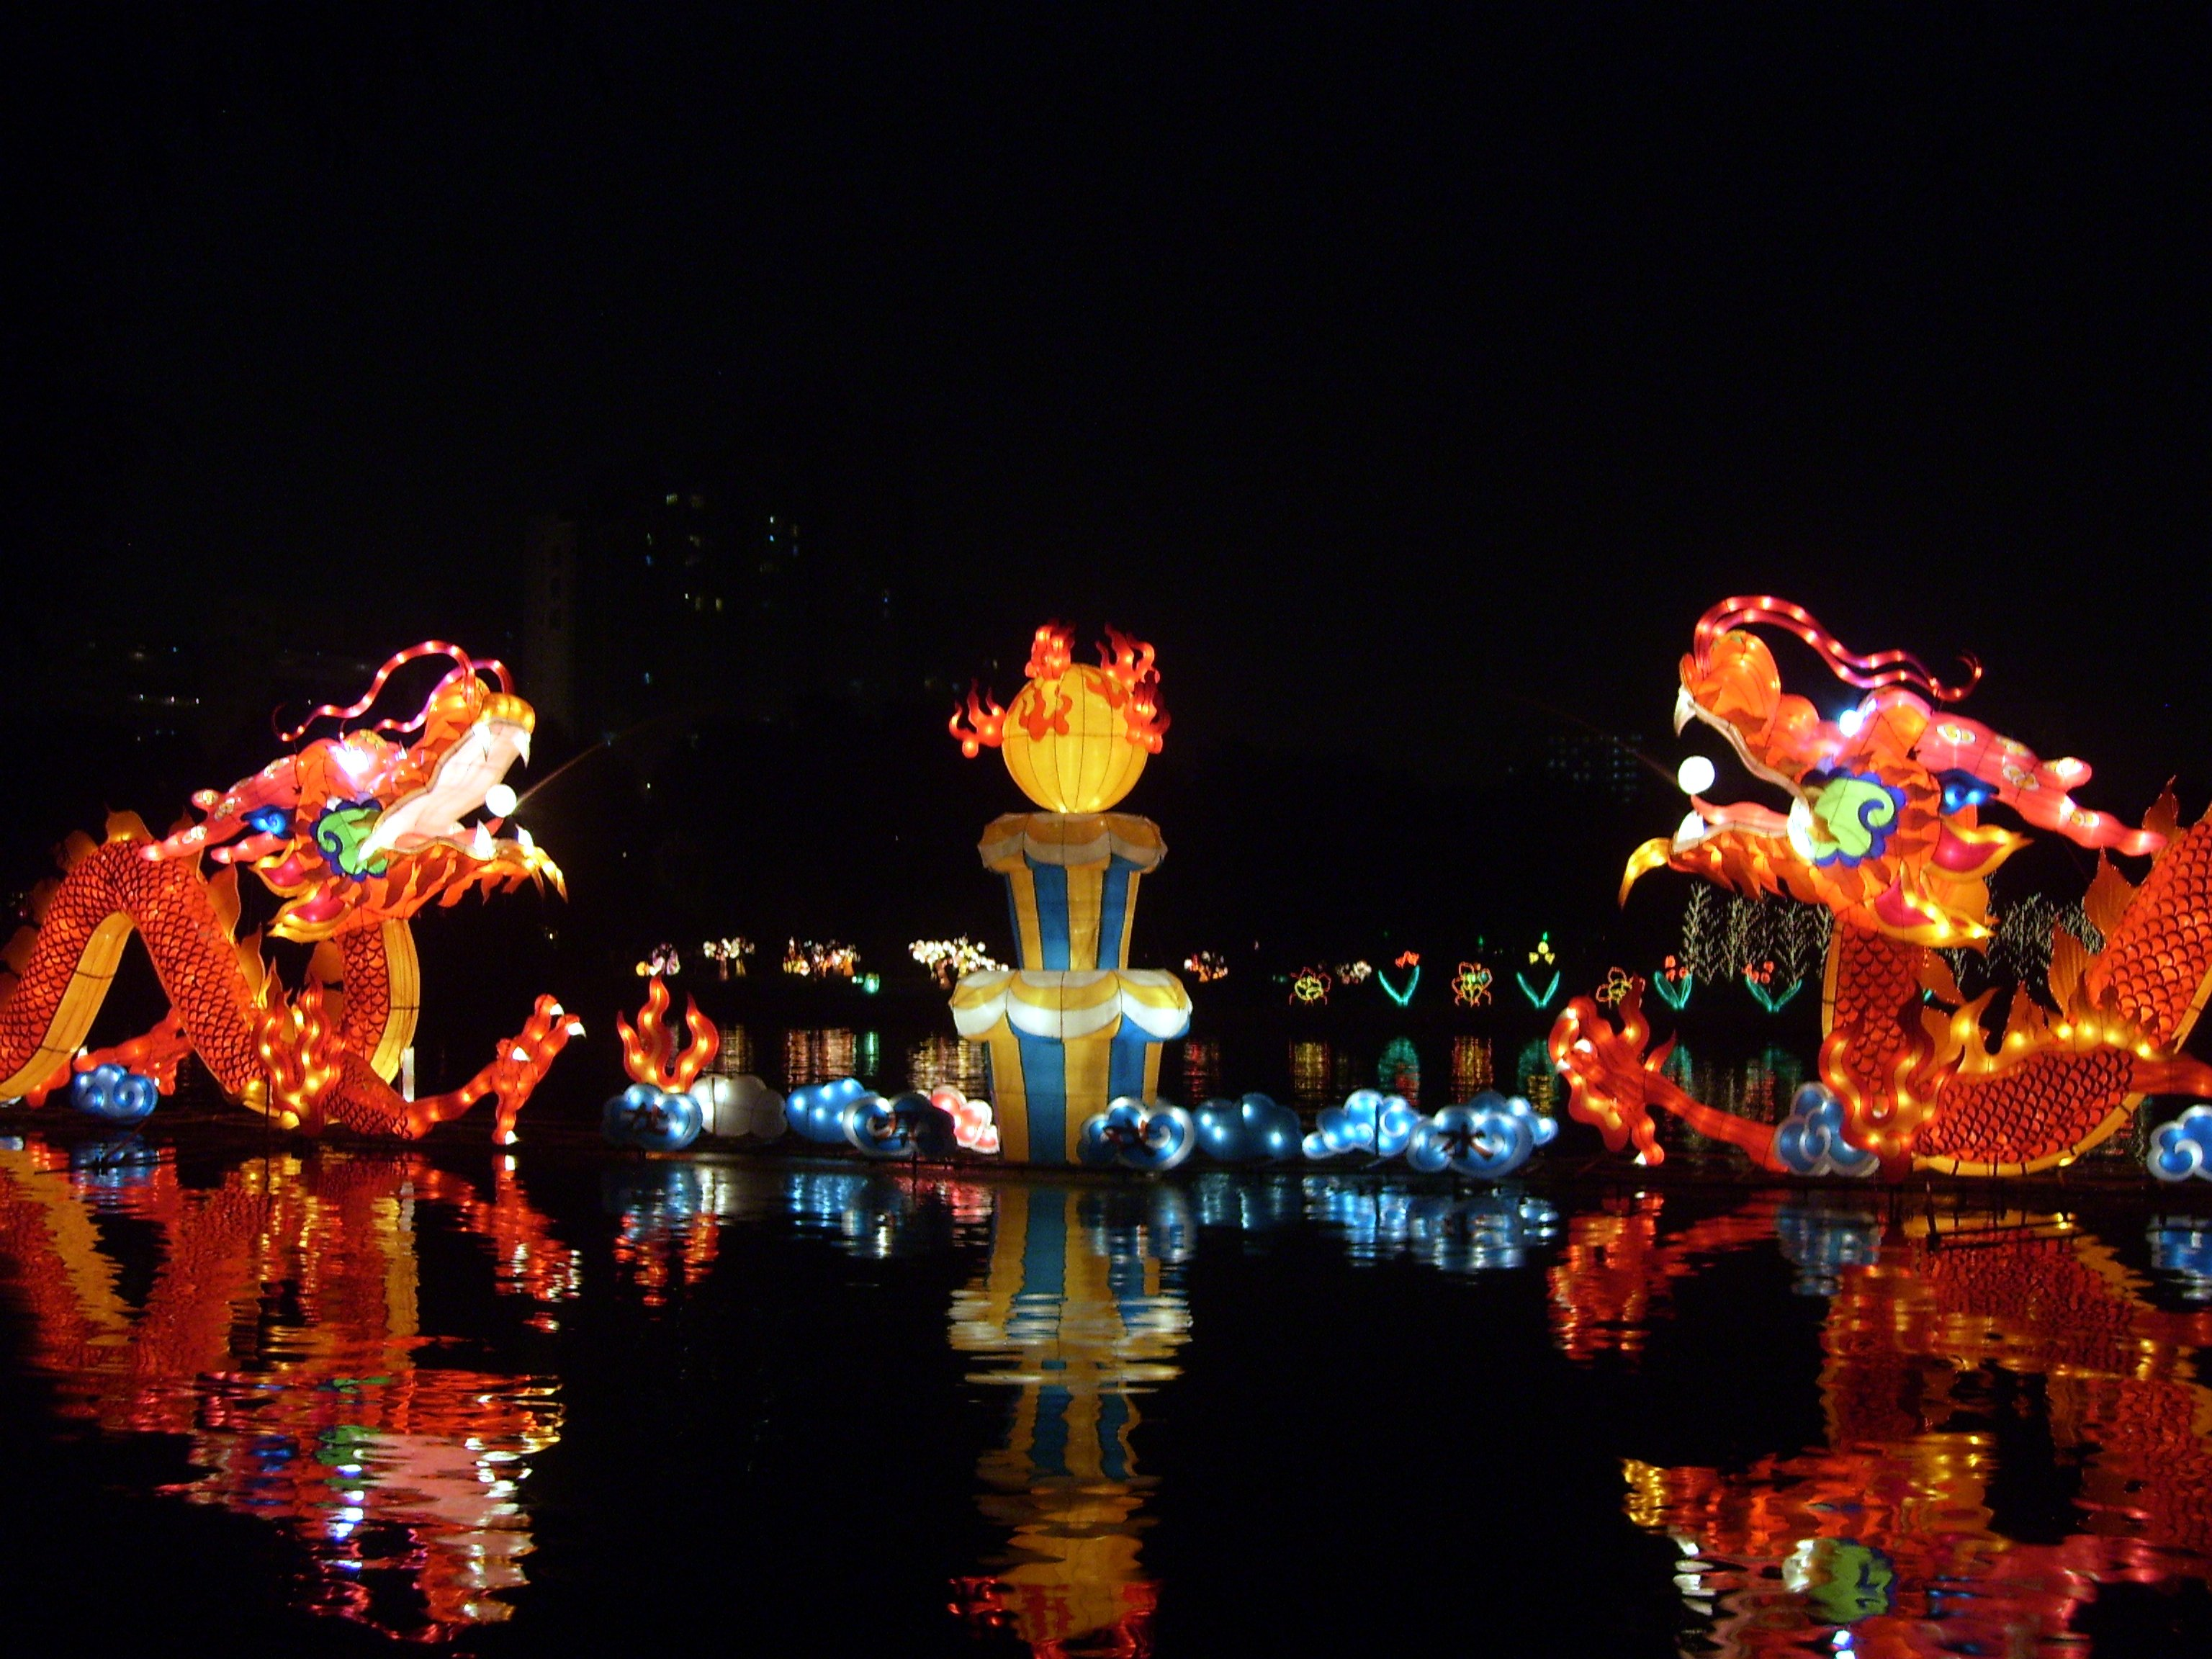 chinese moon festival The legend of the moon maiden one of the stories told to children during moon festival is of the fairy living in a crystal palace.